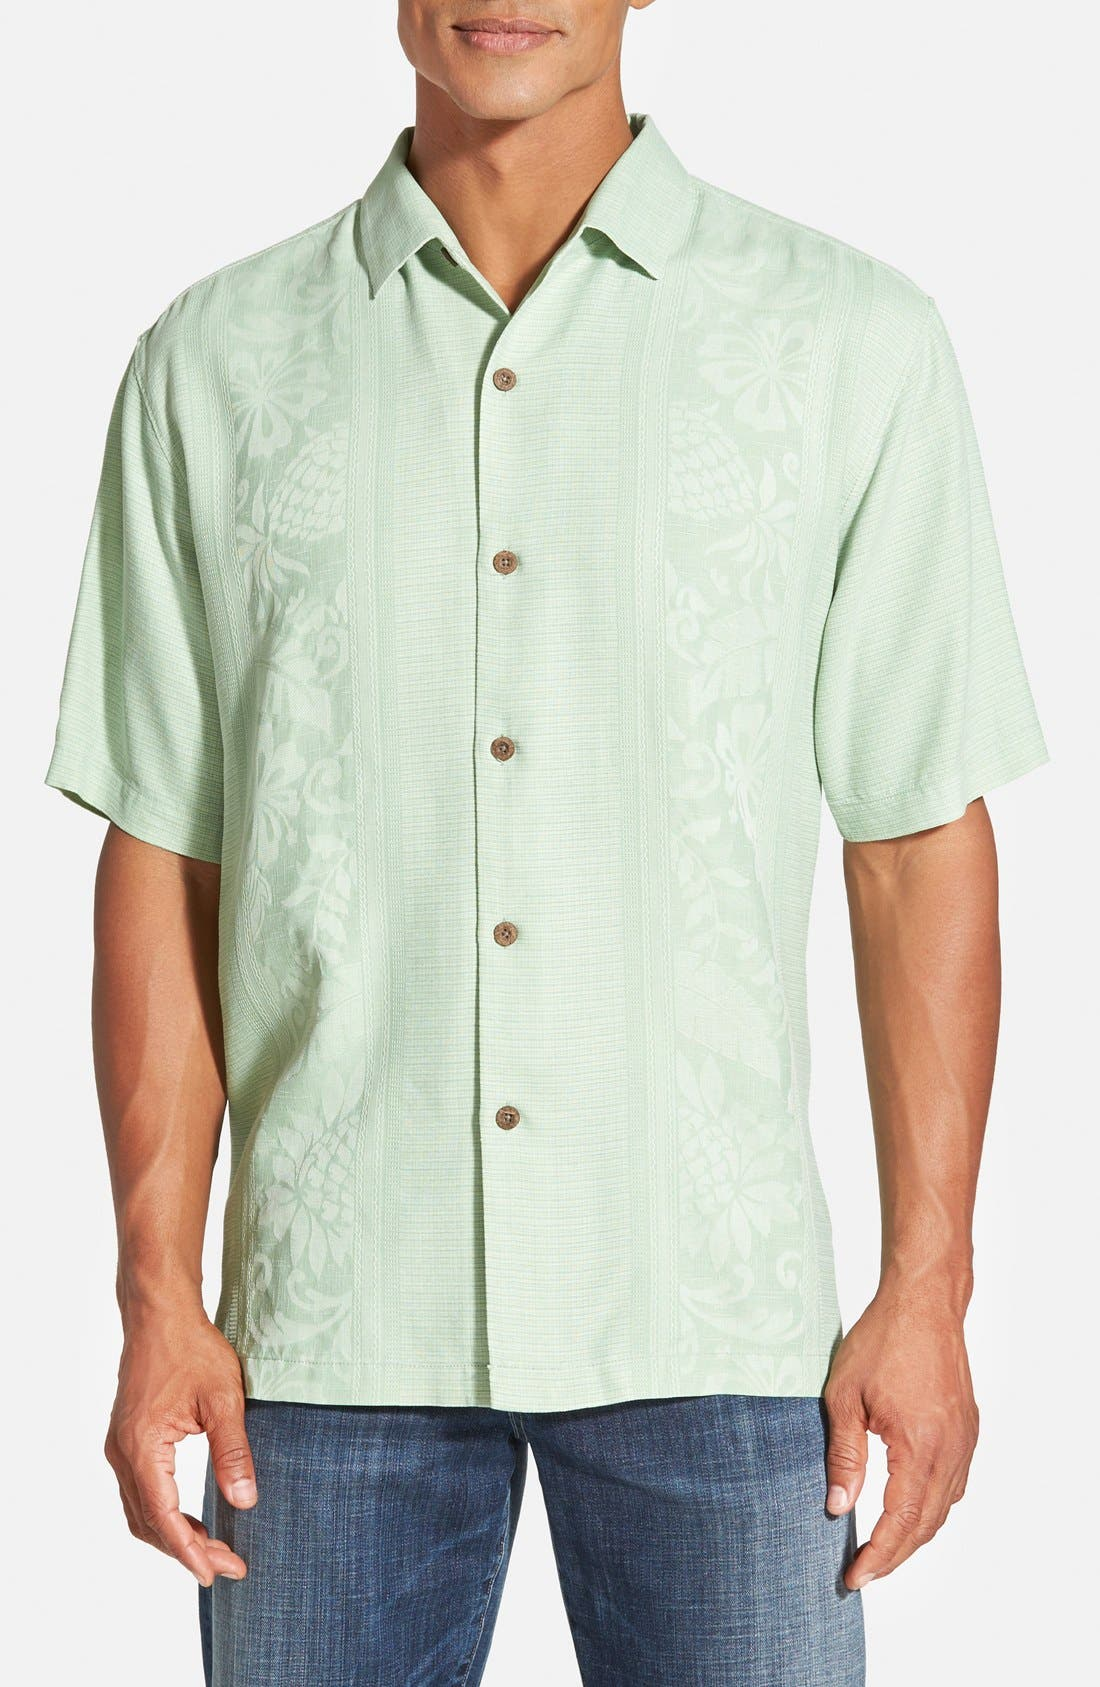 Main Image - Tommy Bahama 'Amazon' Original Fit Silk Jacquard Camp Shirt